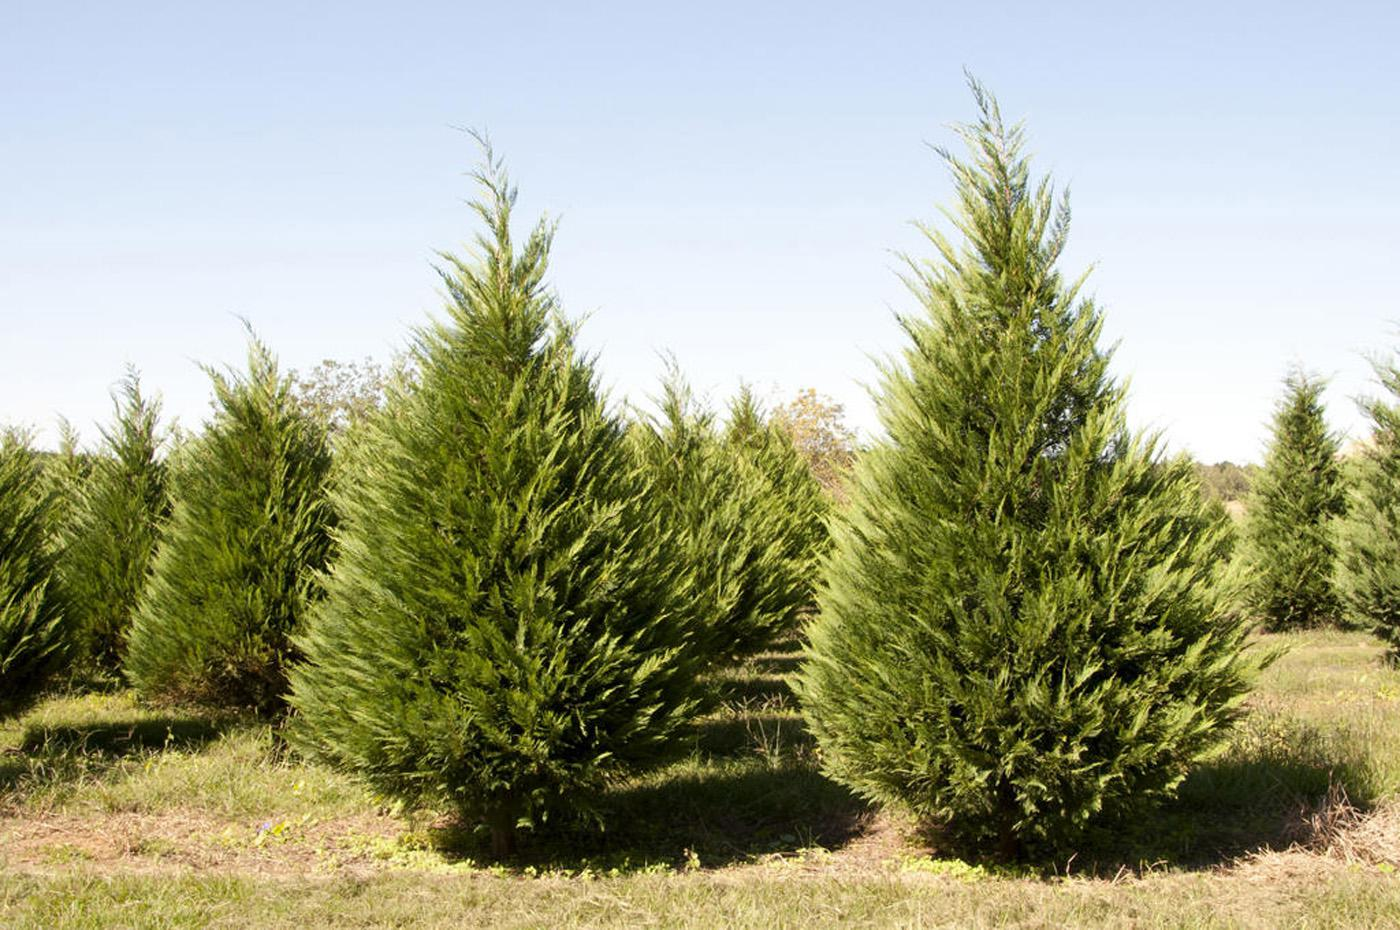 Choosing and cutting live Christmas trees, like the ones at Lazy Acres Plantation in Chunky, can provide families with holiday memories. (Photo by Kat Lawrence)